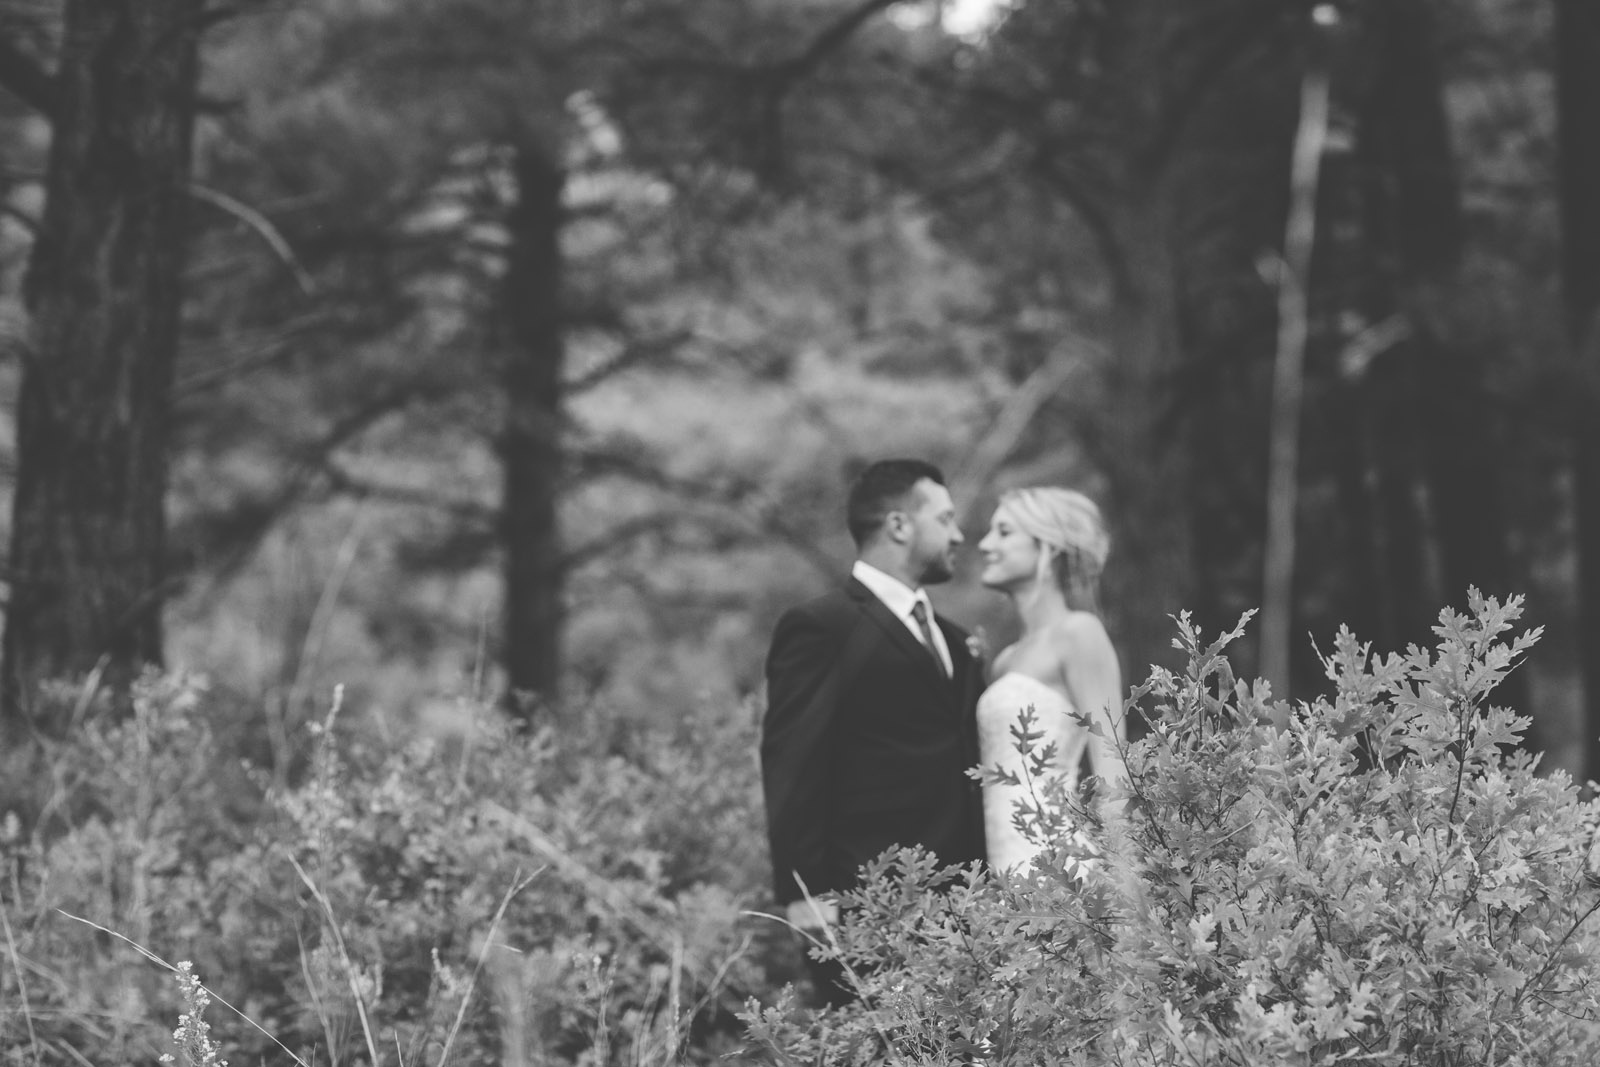 beautiful bride and groom photojournalist portraits at elopement wedding in durango colorado forest